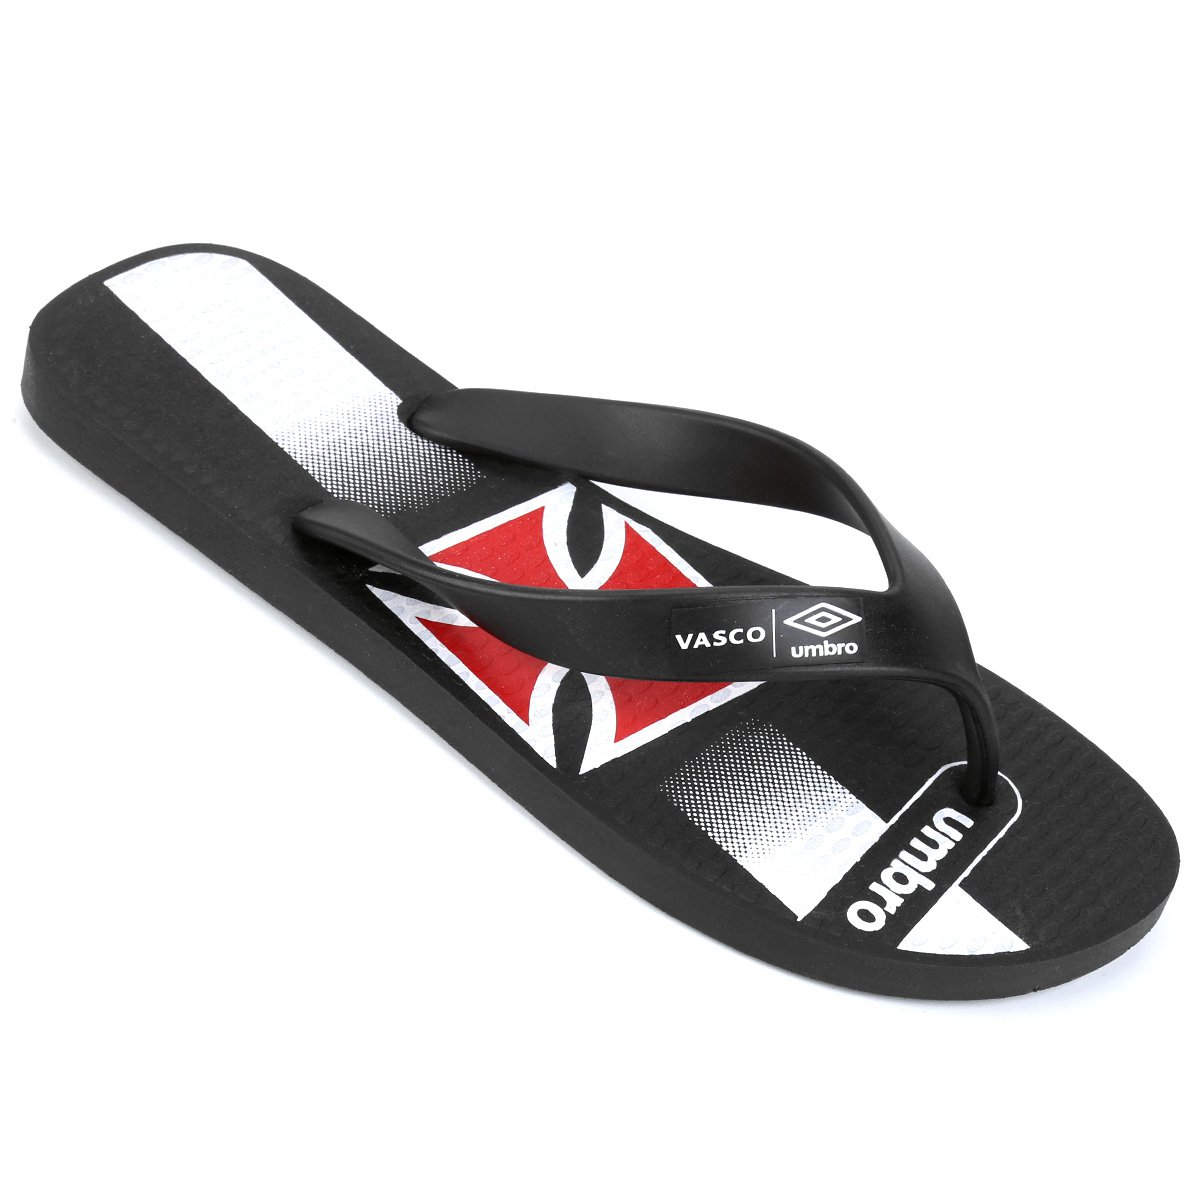 1b4f17a2c7 Chinelo Umbro Vasco  Chinelo Umbro Vasco ...